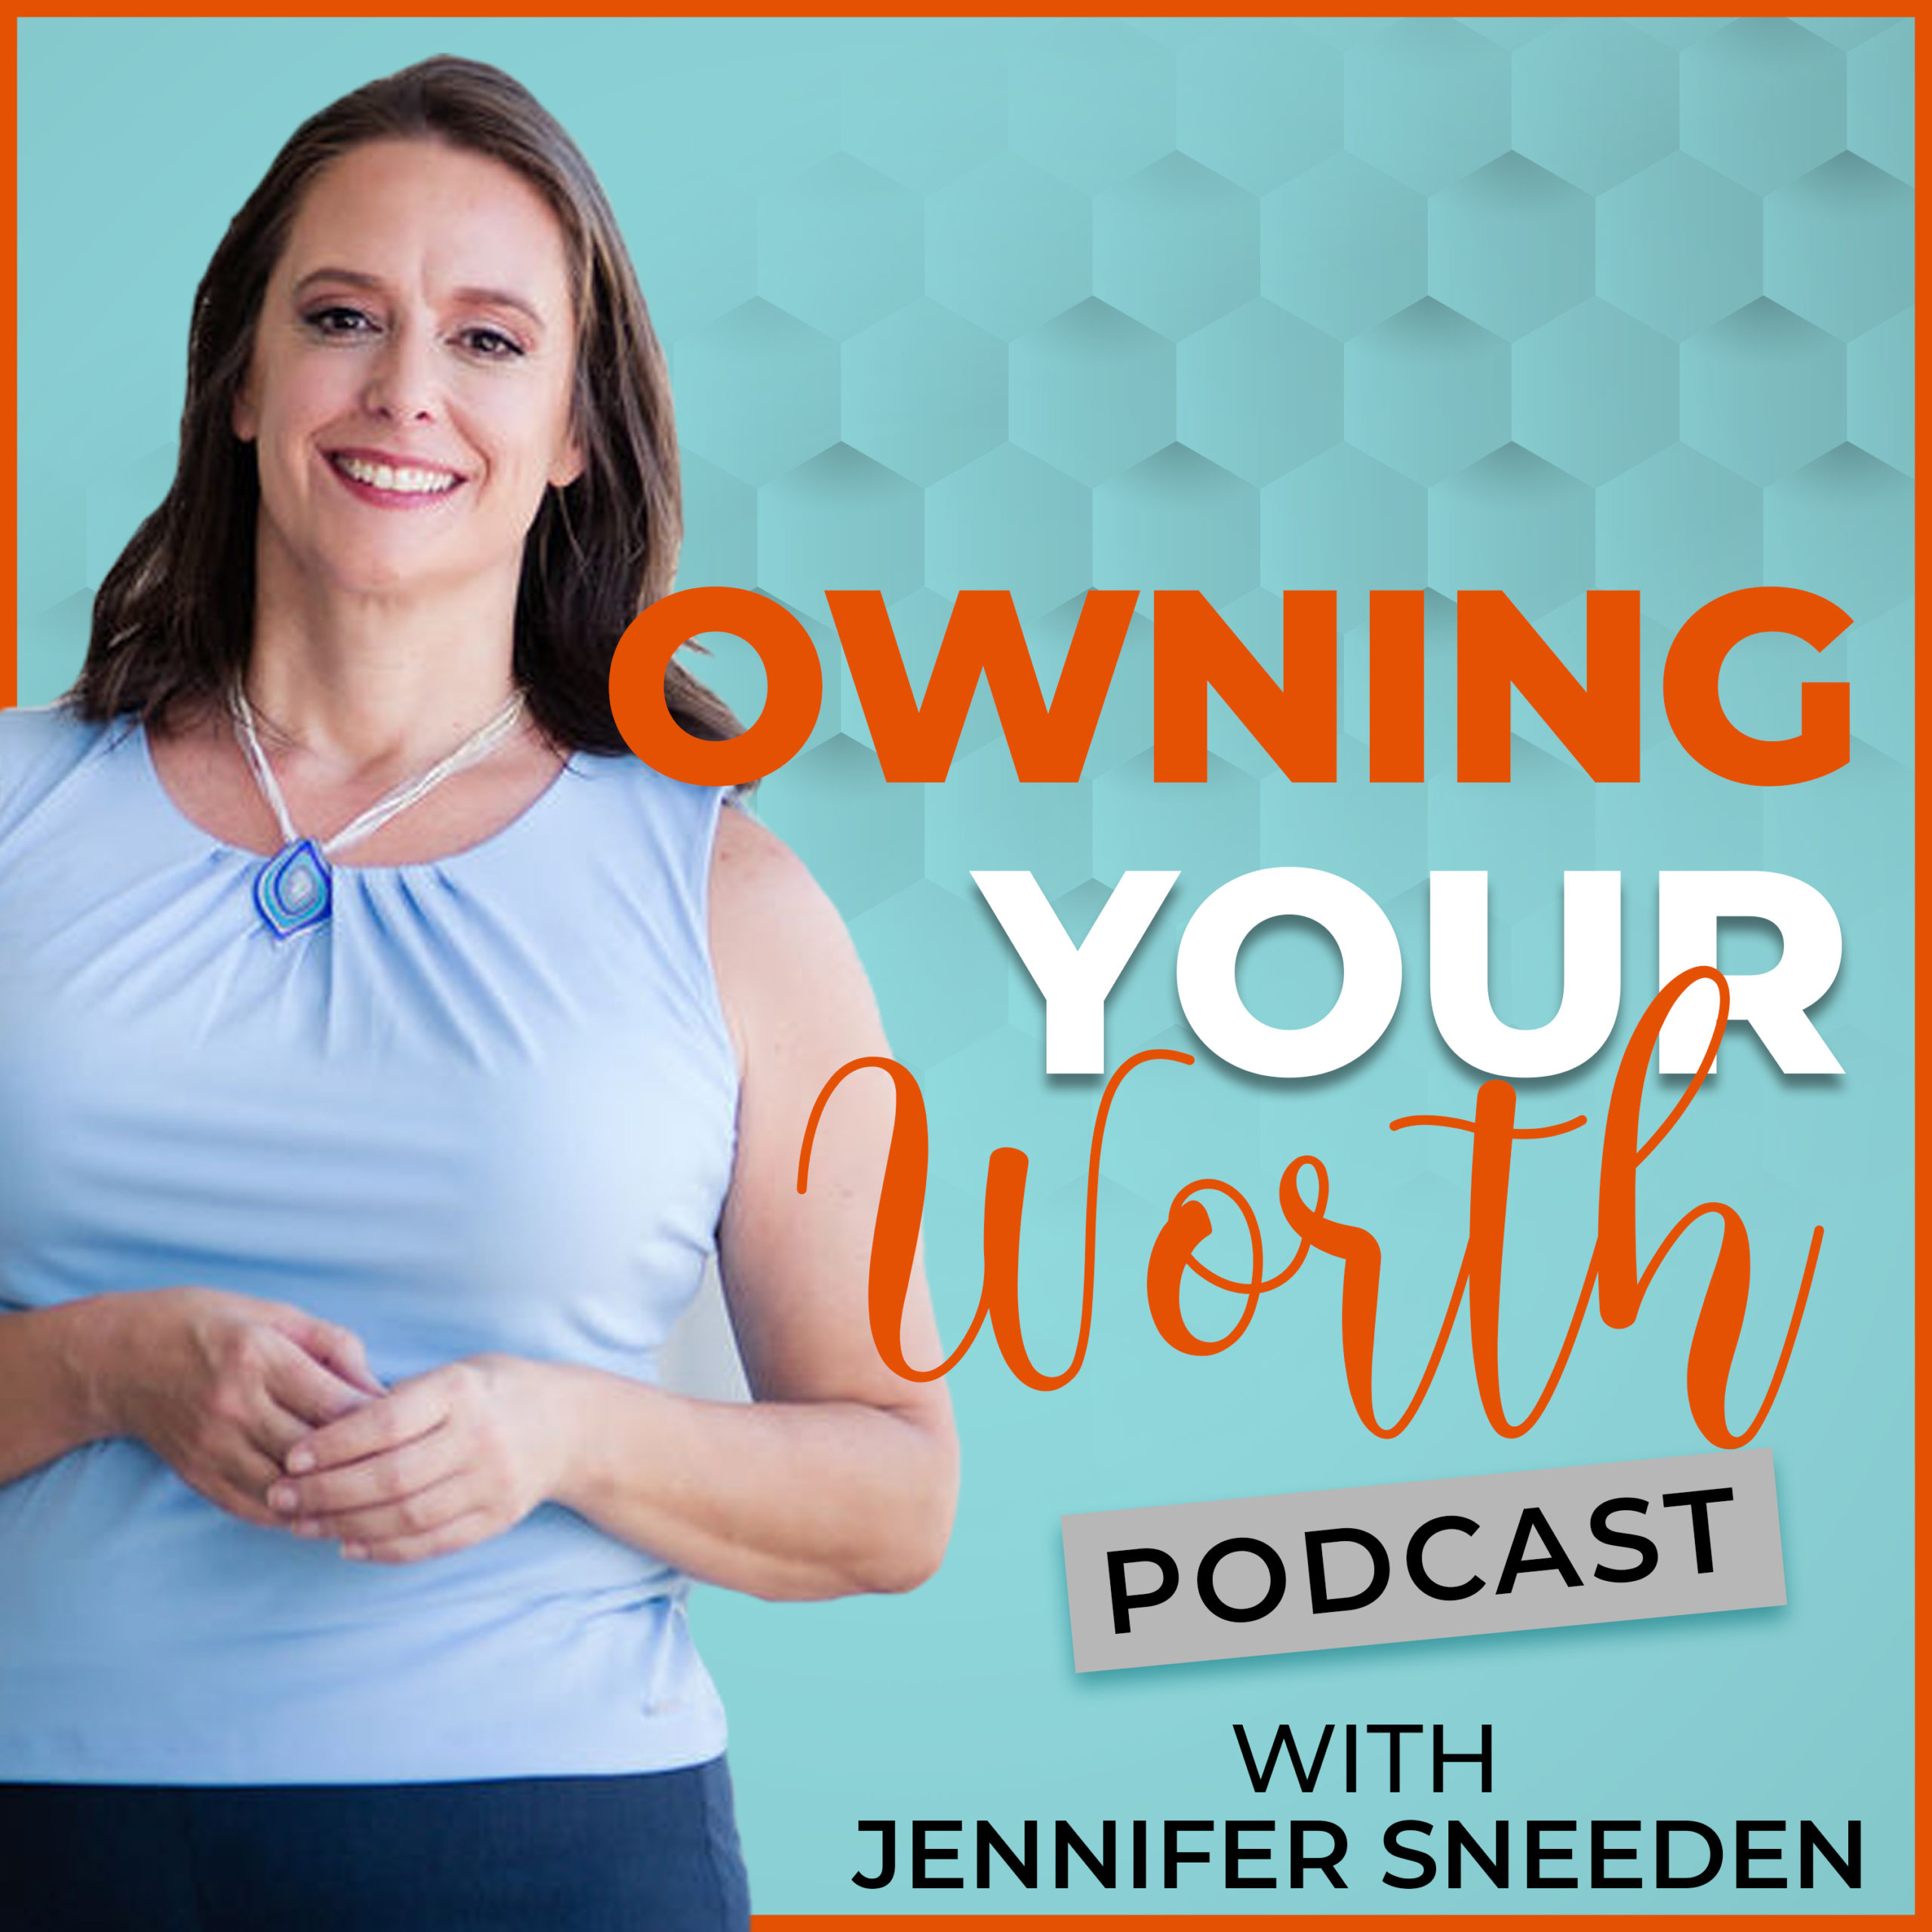 Owning your worth podcast with Jennifer Sneeden graphic